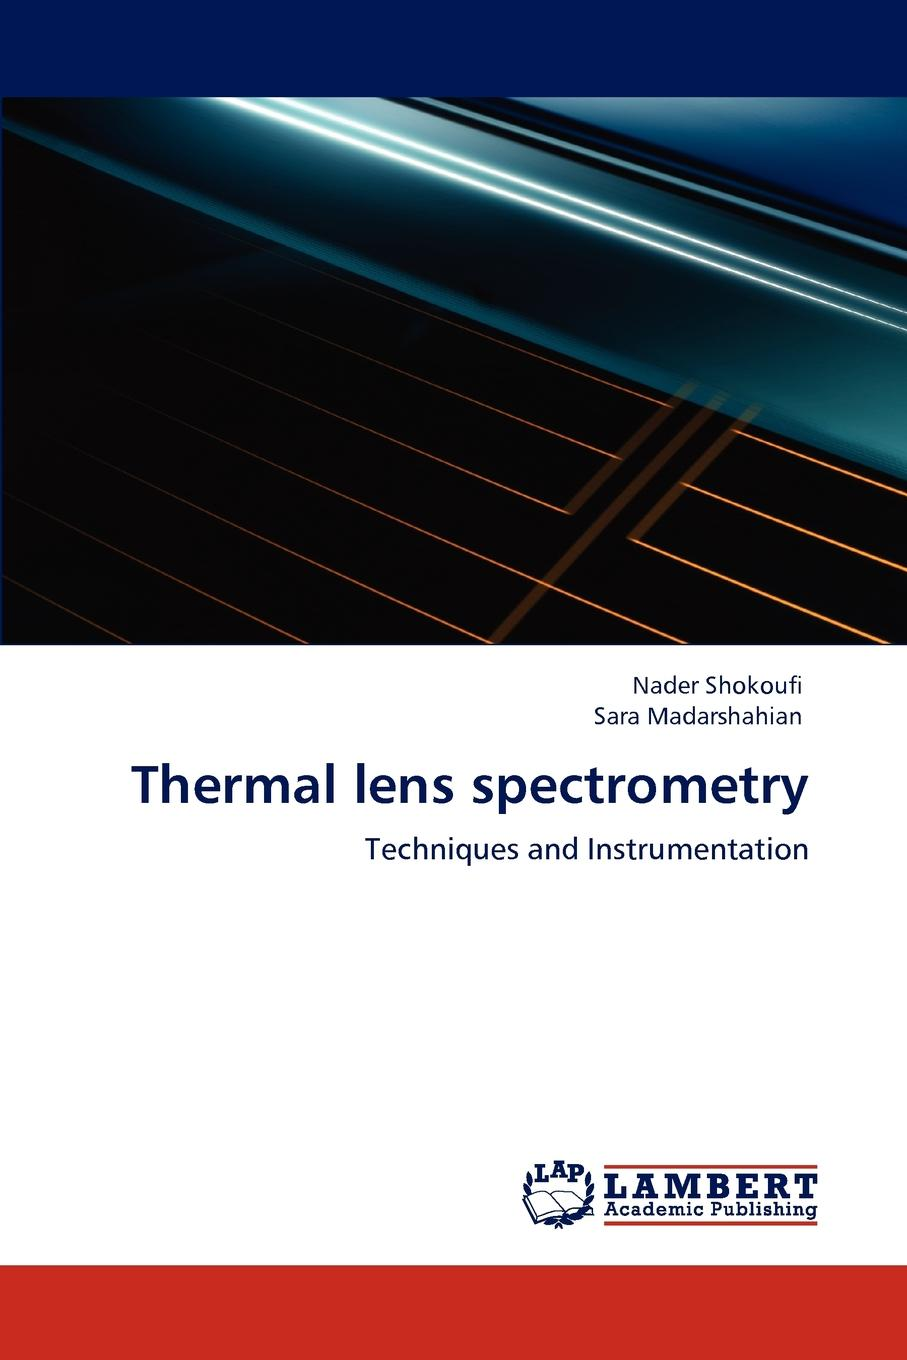 Nader Shokoufi, Sara Madarshahian Thermal Lens Spectrometry biological microscope 100x plan objective lens ach 160 0 17